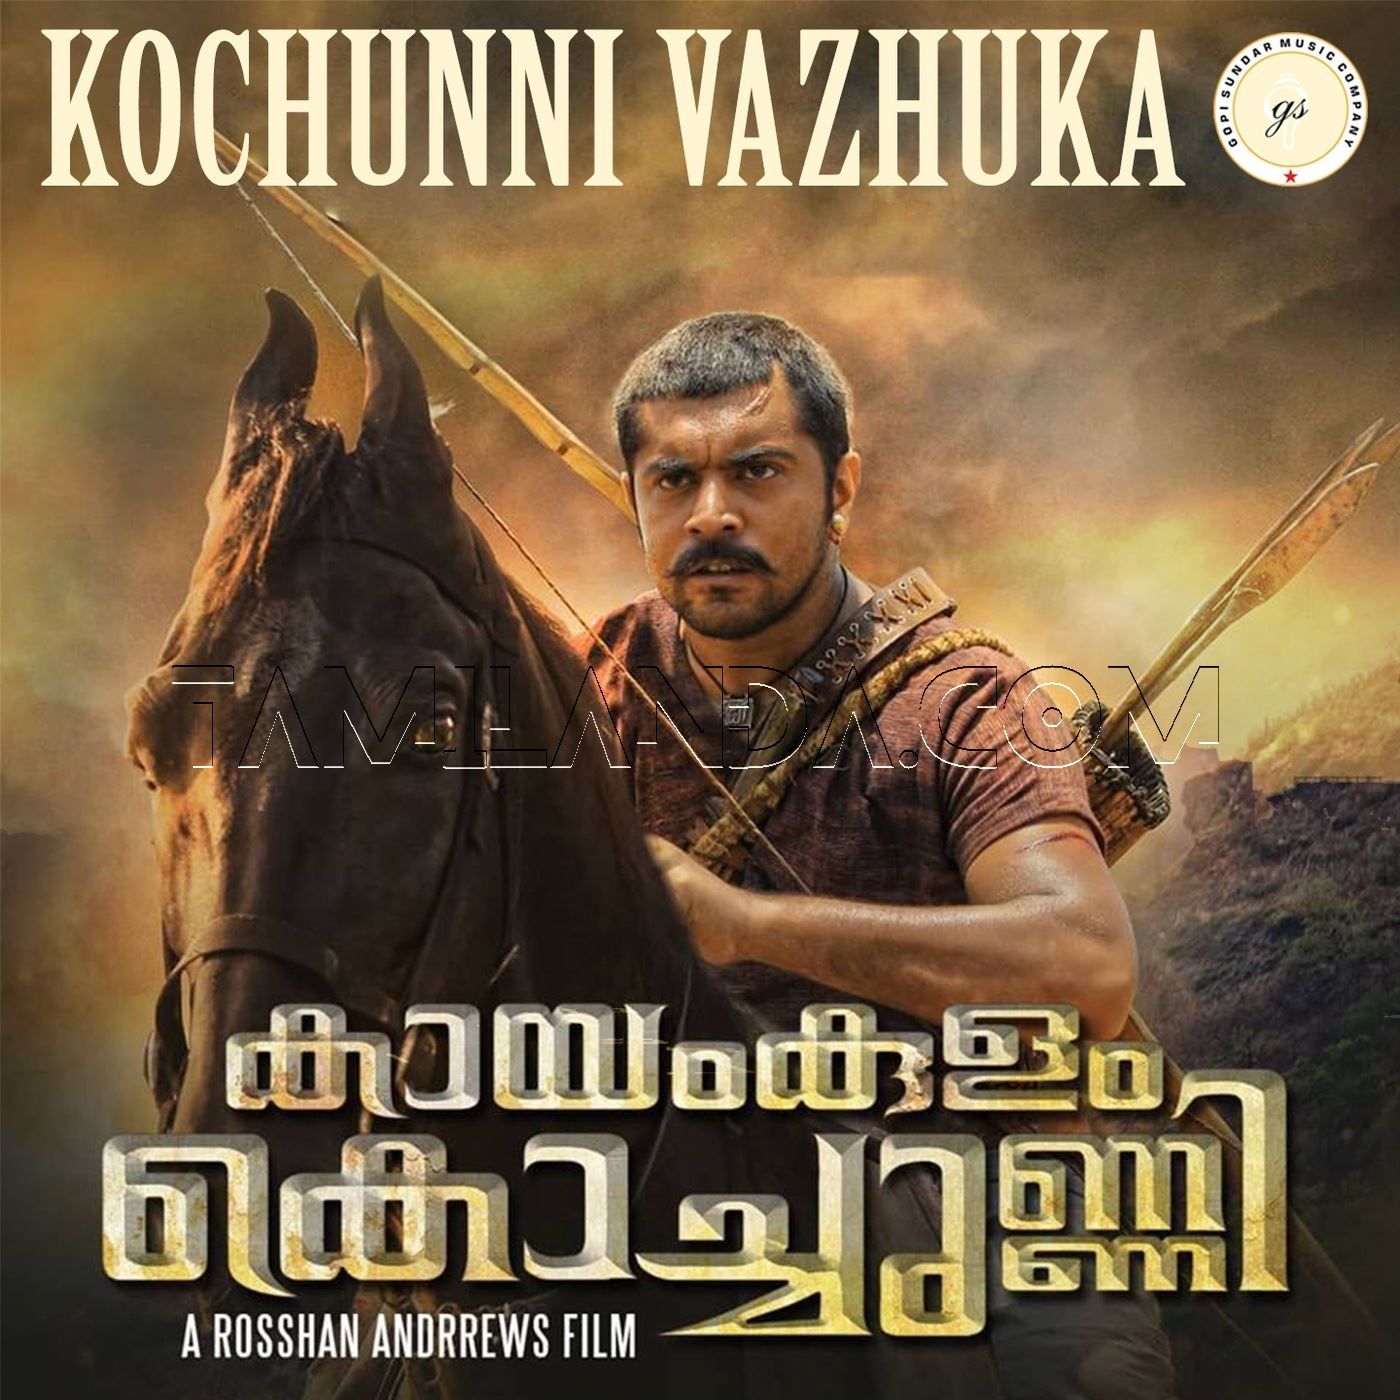 Kochunni Vazhuka (From Kayamkulam Kochunni) (2018) FLAC Song